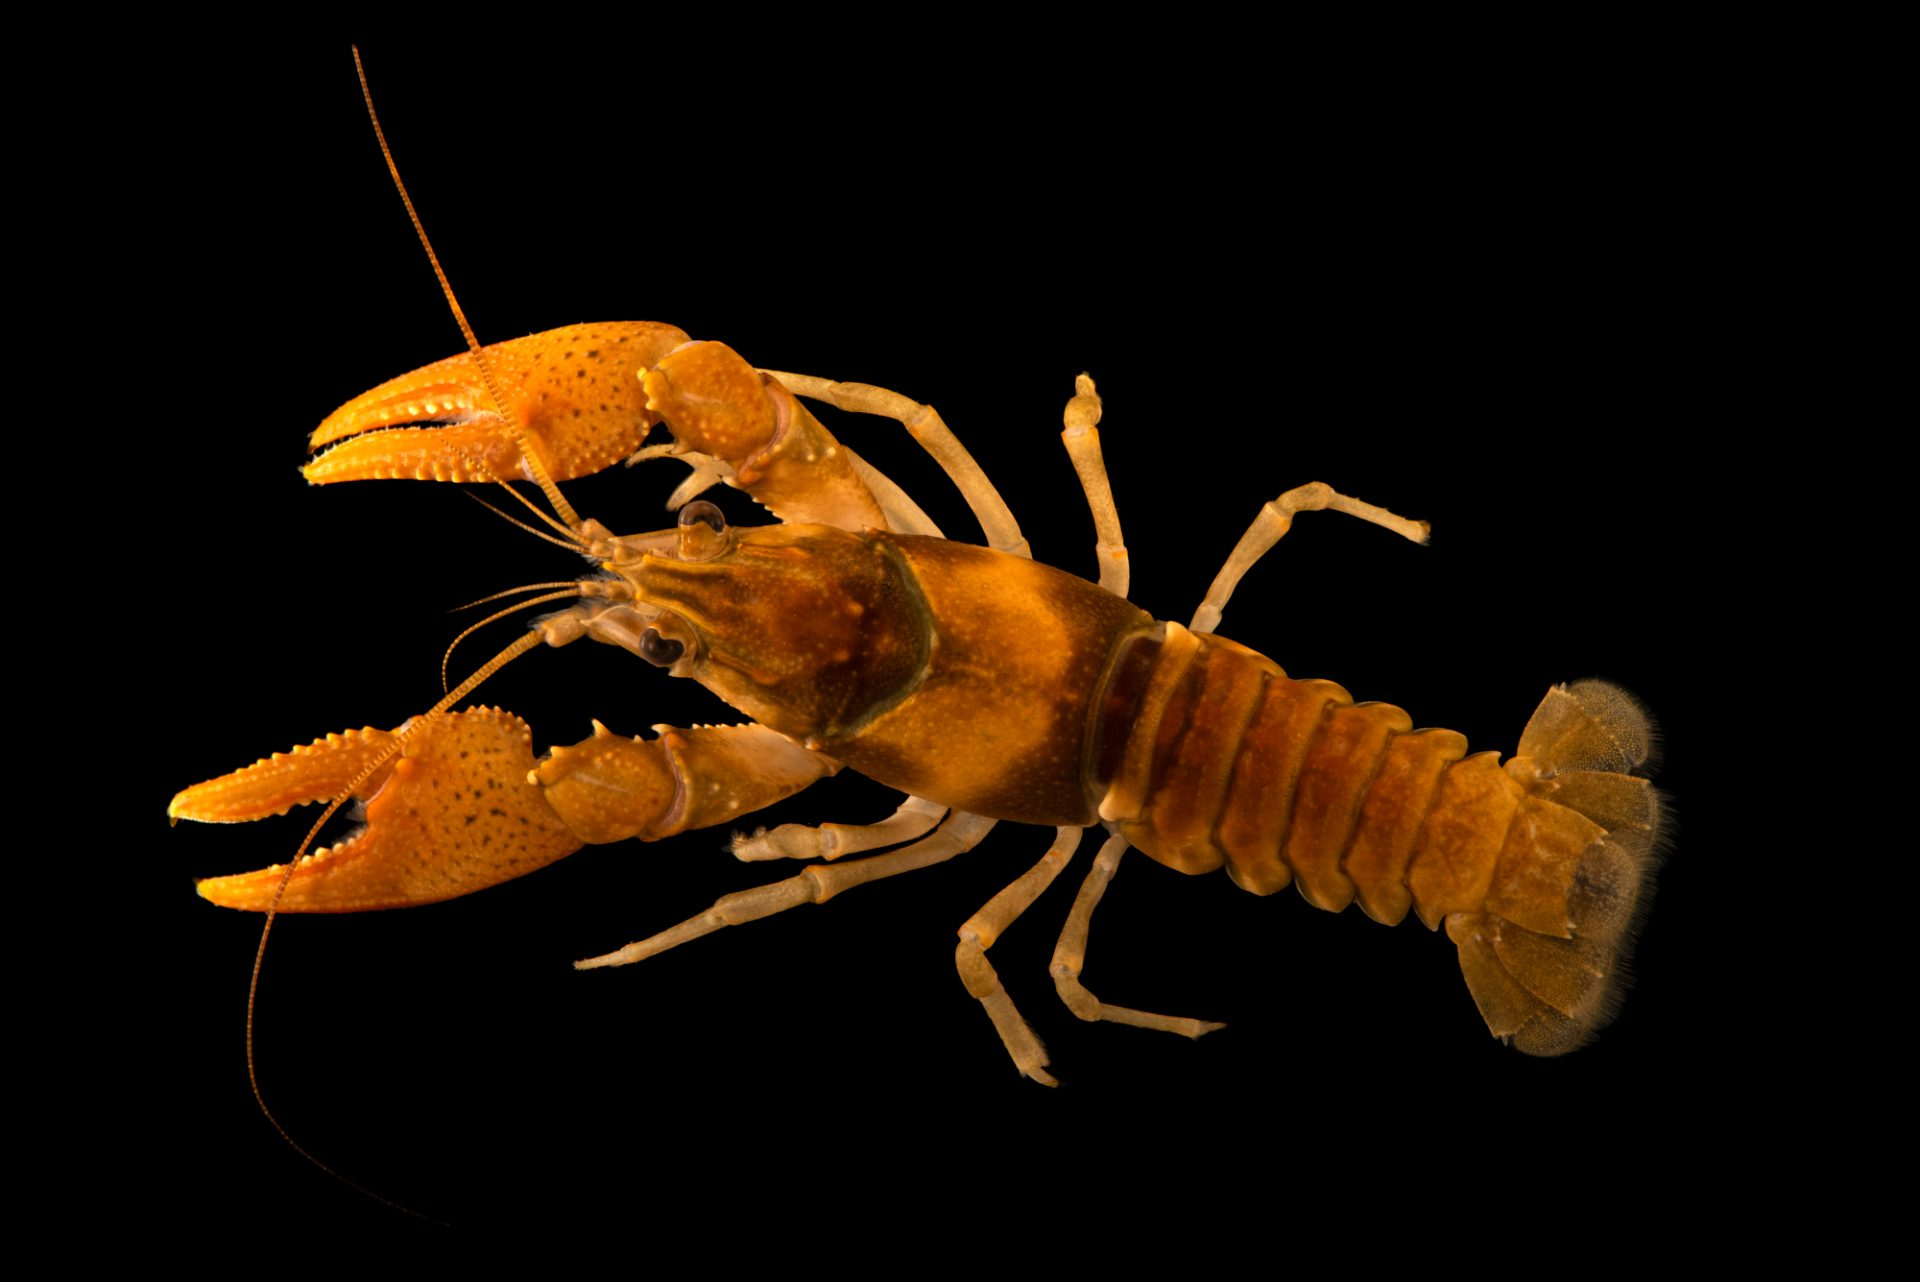 Photo: Mammoth Spring crayfish (Orconectes marchandi) from the wild.